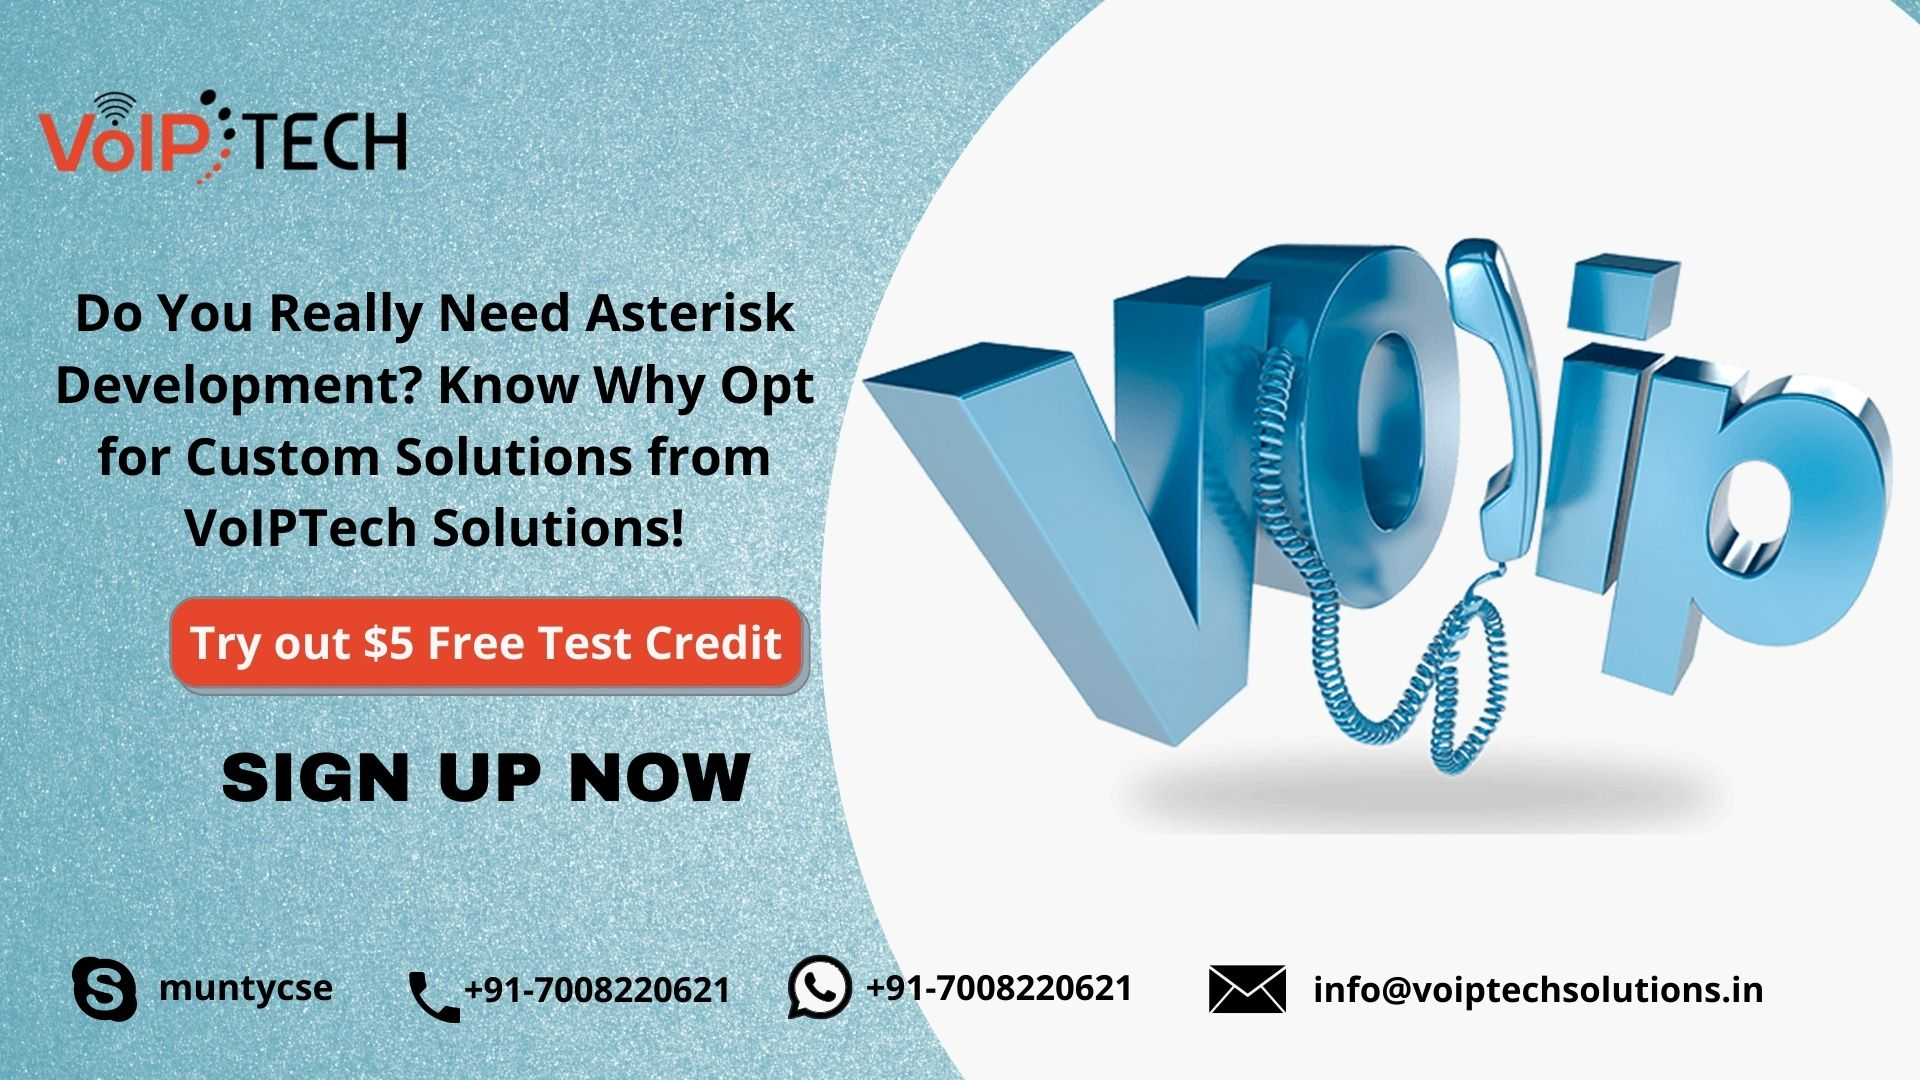 Do You Really Need Asterisk Development? Know Why Opt for Custom Solutions from VoIPTech Solutions!, Asterisk Development, Exploring The VoIP Technology from Business Point of view. Pros & Cons! ,VoIP Business, VoIP tech solutions, vici dialer, virtual number, Voip Providers, voip services in india, best sip provider, business voip providers, VoIP Phone Numbers, voip minutes provider, top voip providers, voip minutes, International VoIP Provider